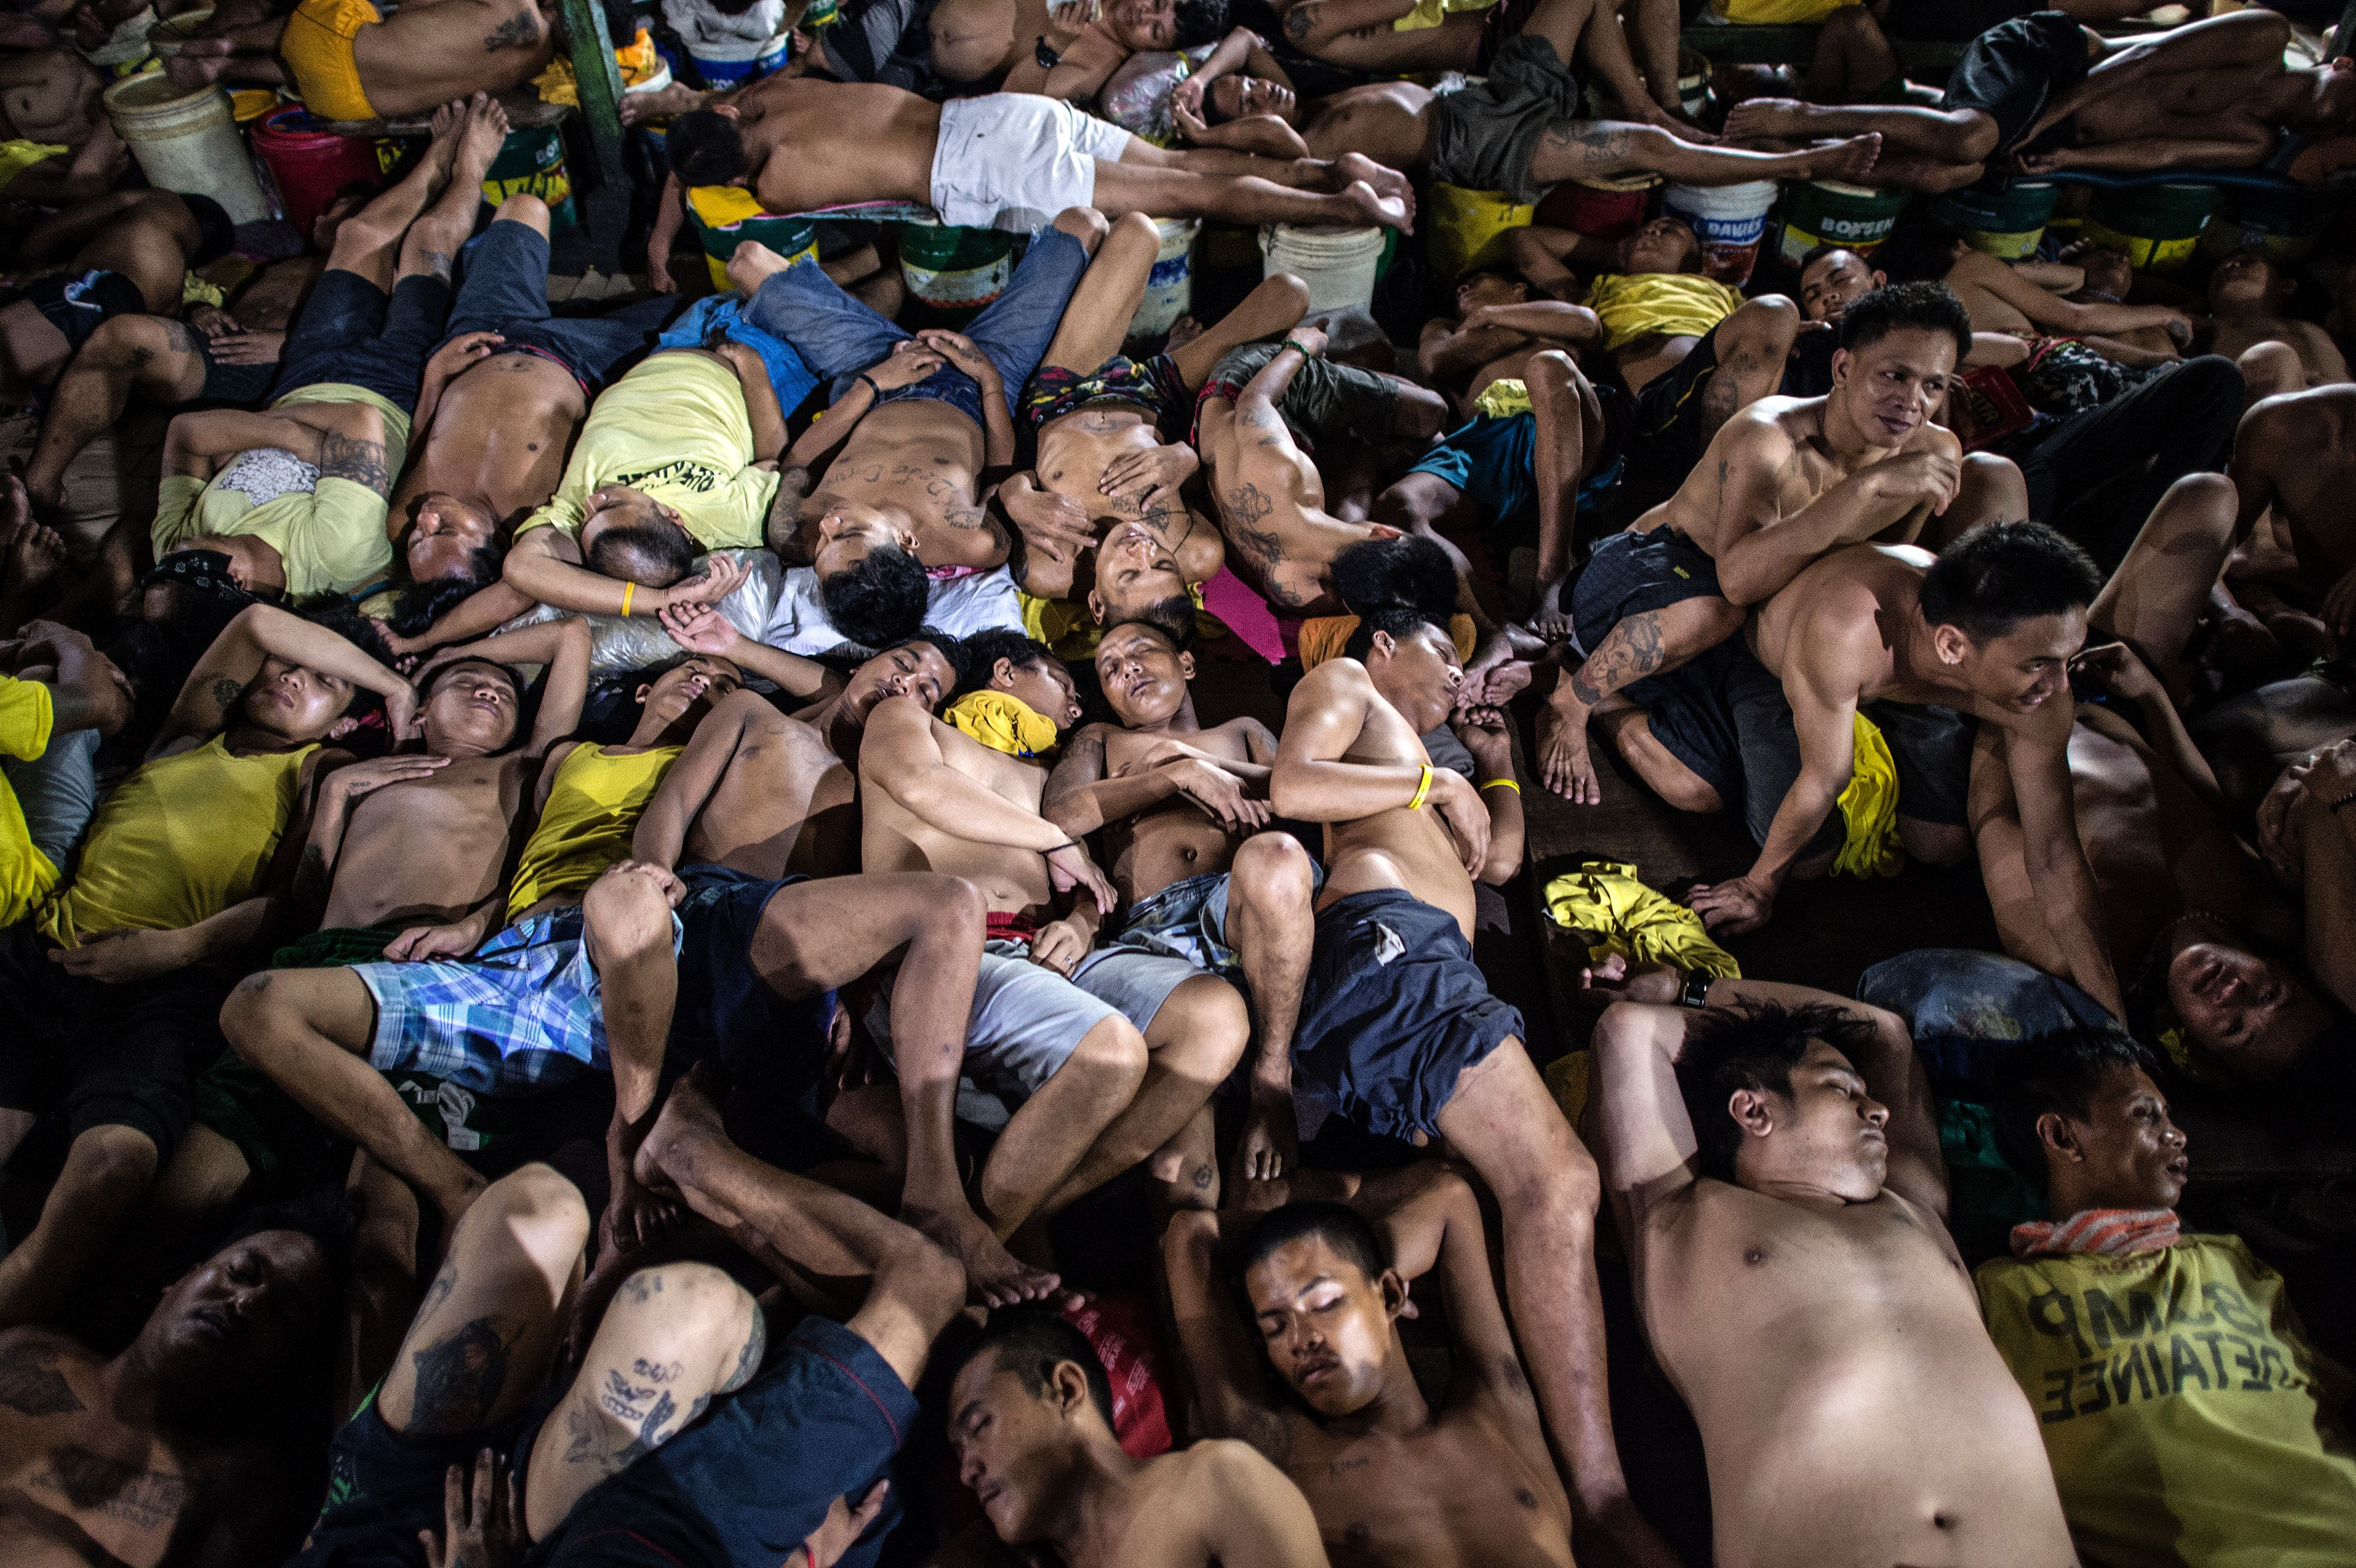 This picture taken on July 21, 2016, shows inmates sleeping inside the Quezon City jail in Manila. Philippine officials said on Aug. 9, 2016, the government would build new jails to address severe congestion made worse by President Rodrigo Duterte's drug war, describing conditions as  inhumane  and  unacceptable